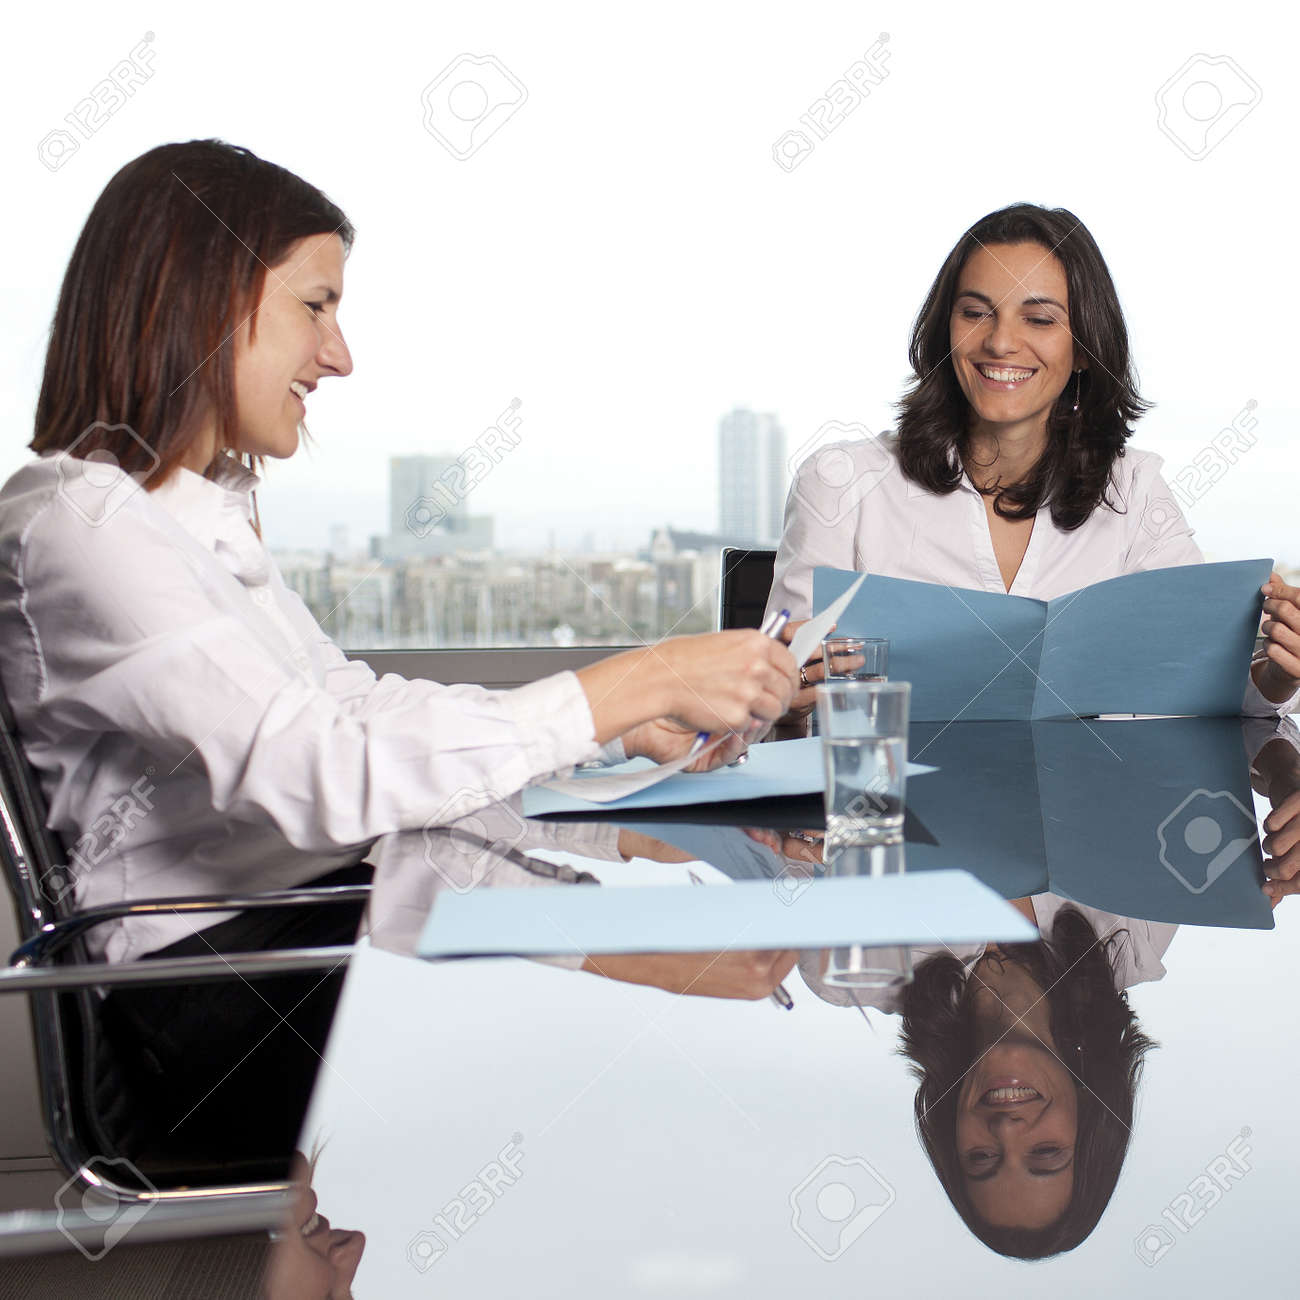 Recruiter checking the candidate during job interview Stock Photo - 16449107